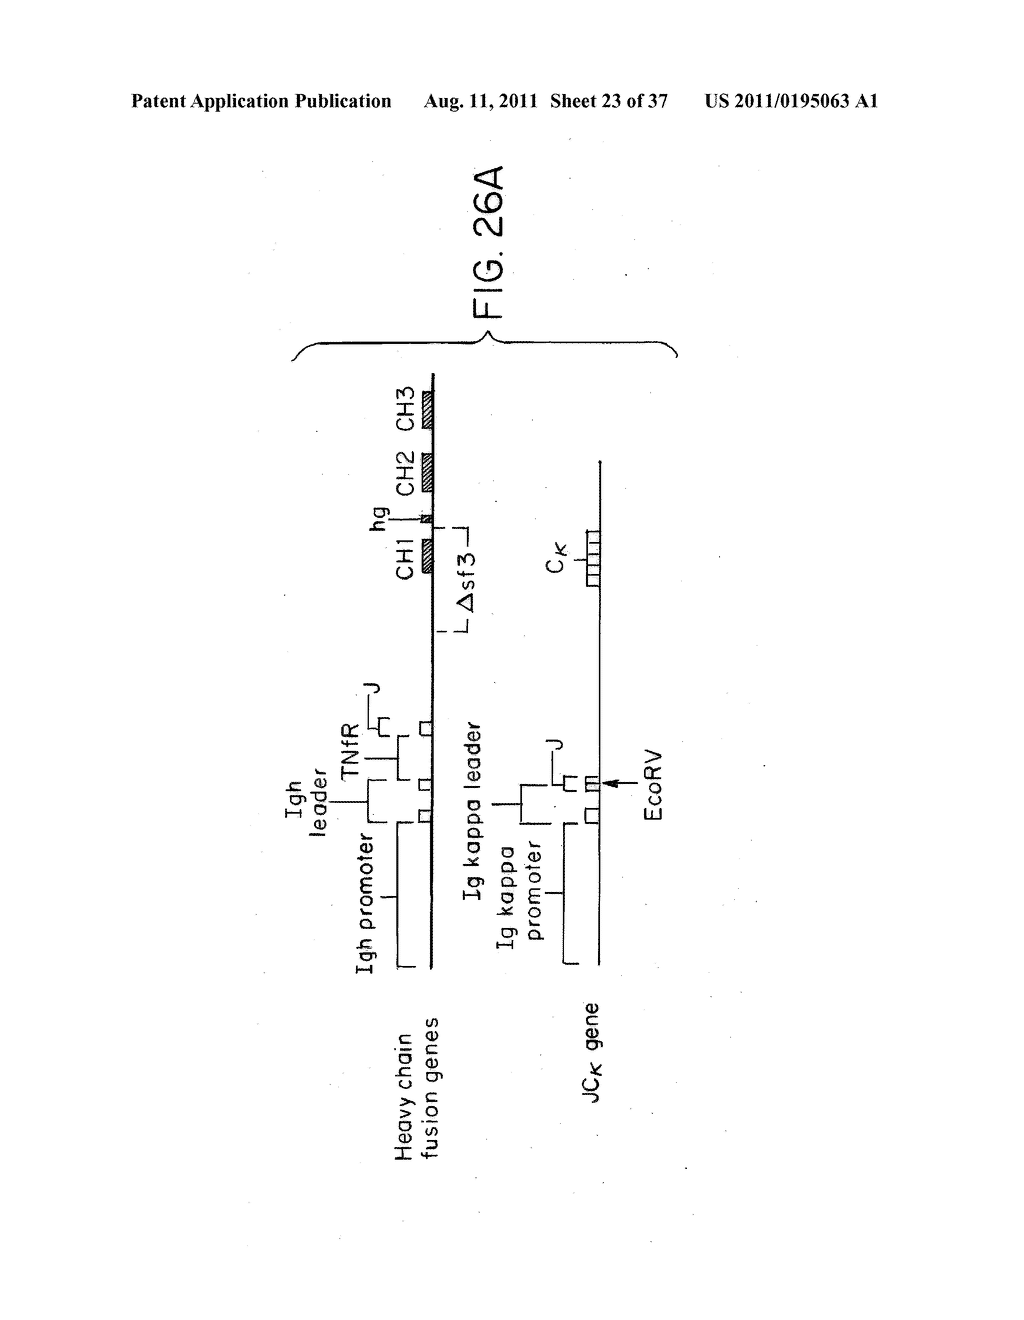 Methods of Treating Ankylosing Spondylitis Using Anti-TNF Antibodies and     Peptides of Human Tumor Necrosis Factor - diagram, schematic, and image 24